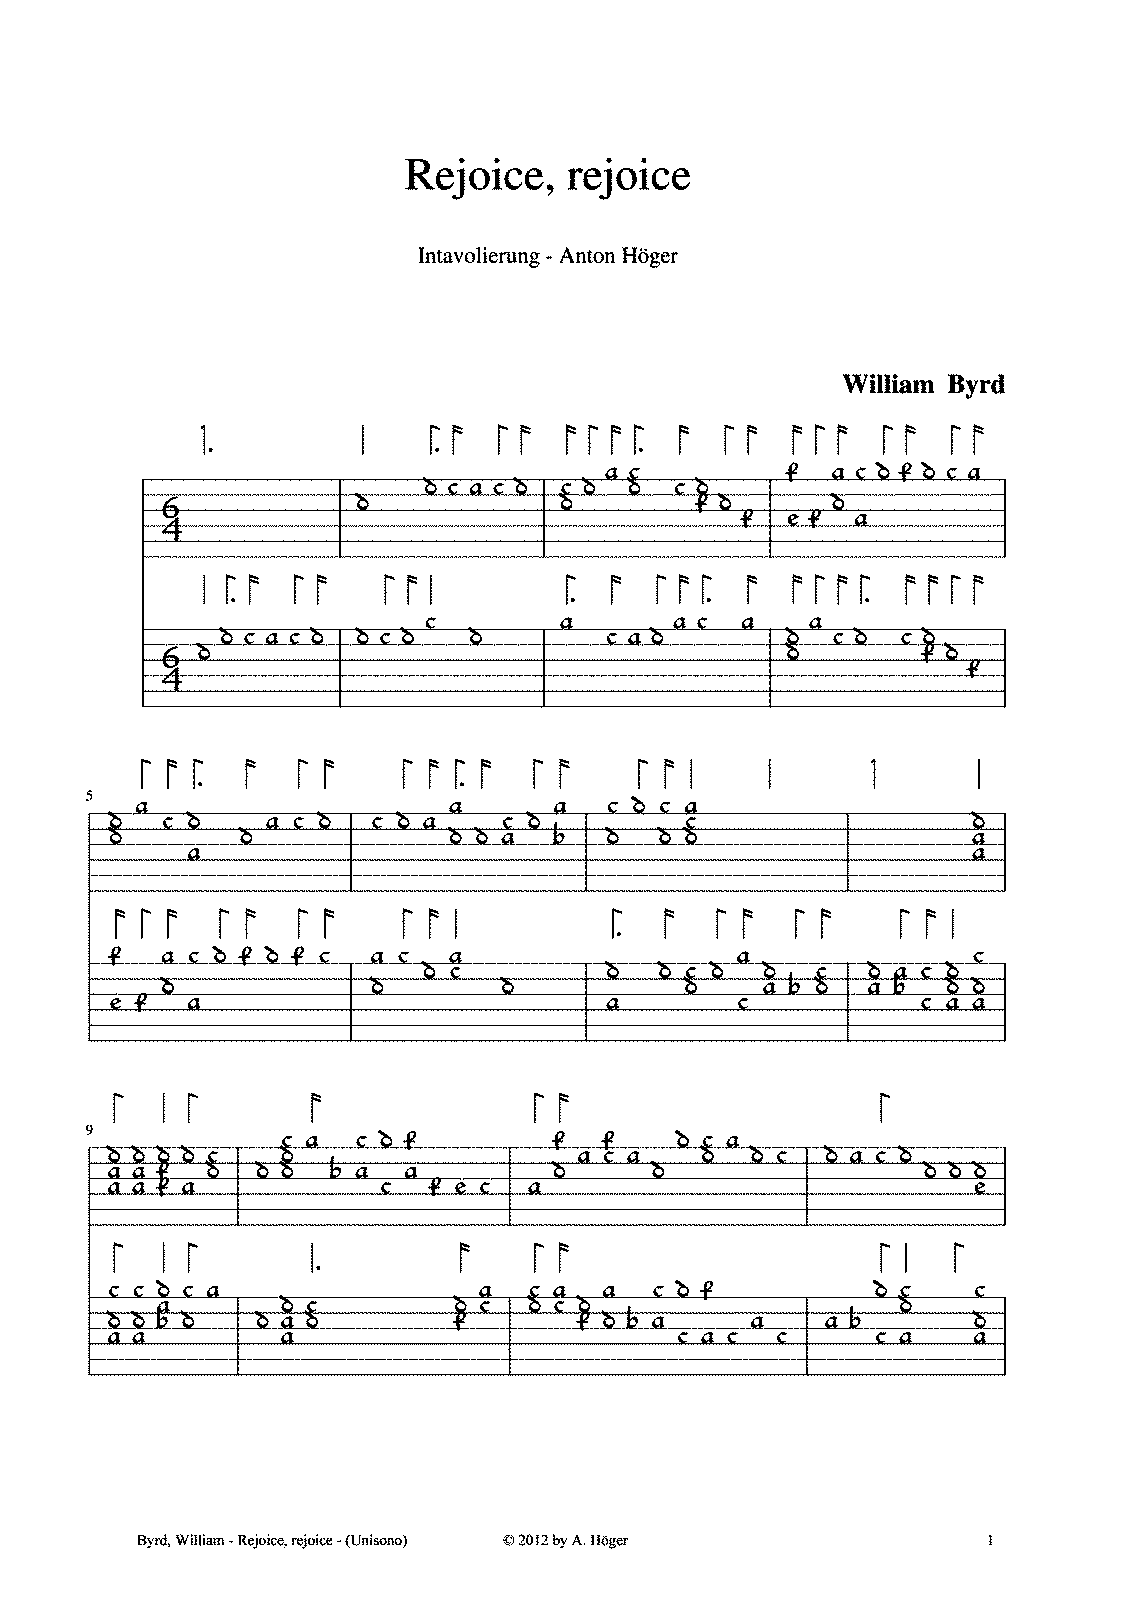 PMLP396391-Byrd, William - Rejoice, rejoice.pdf